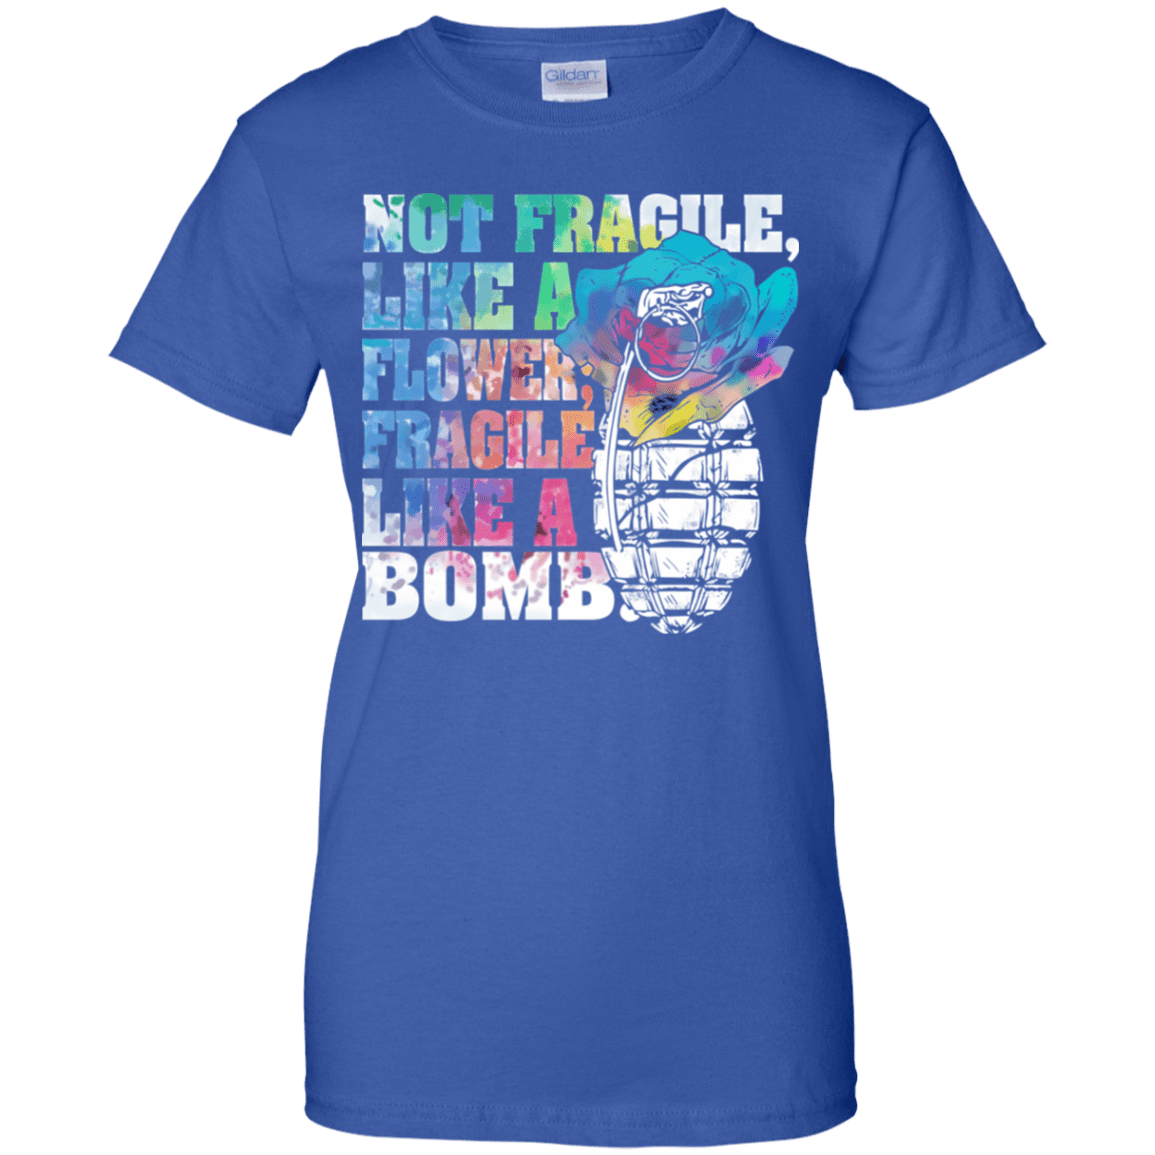 Not Fragile Like A Flower, Fragile Like A Bomb 939-9264-73170840-44807 - Tee Ript